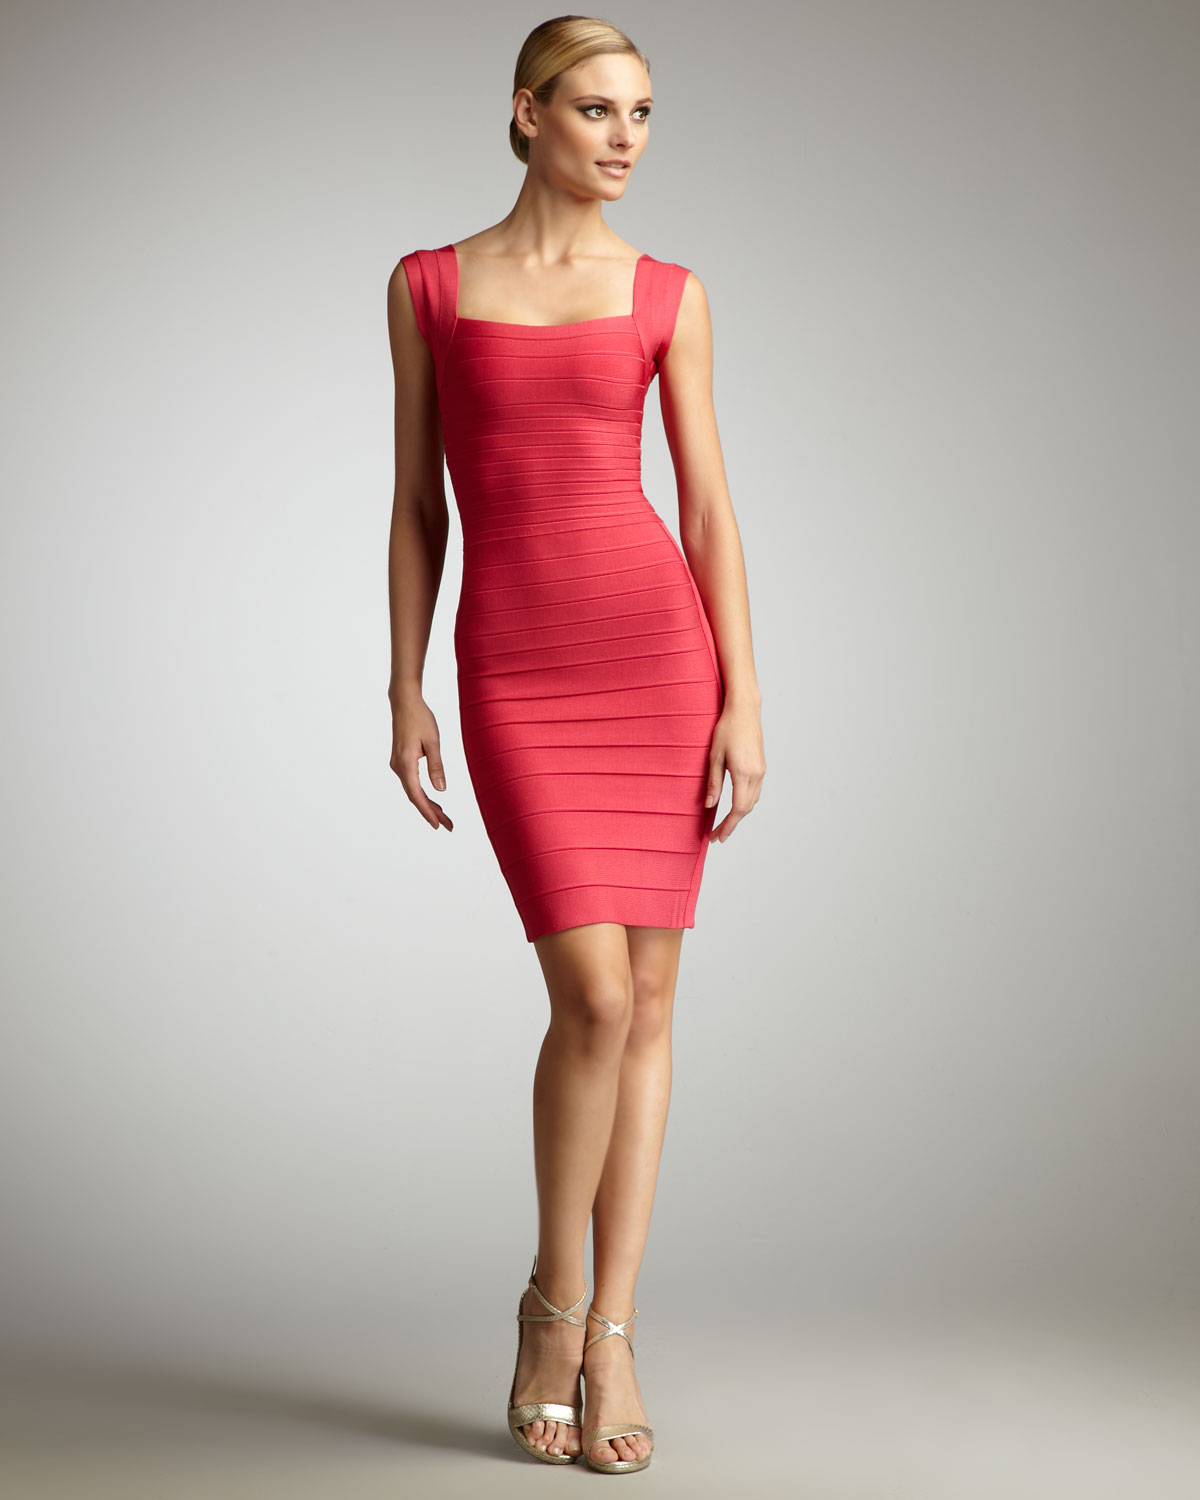 Satin bandage dress